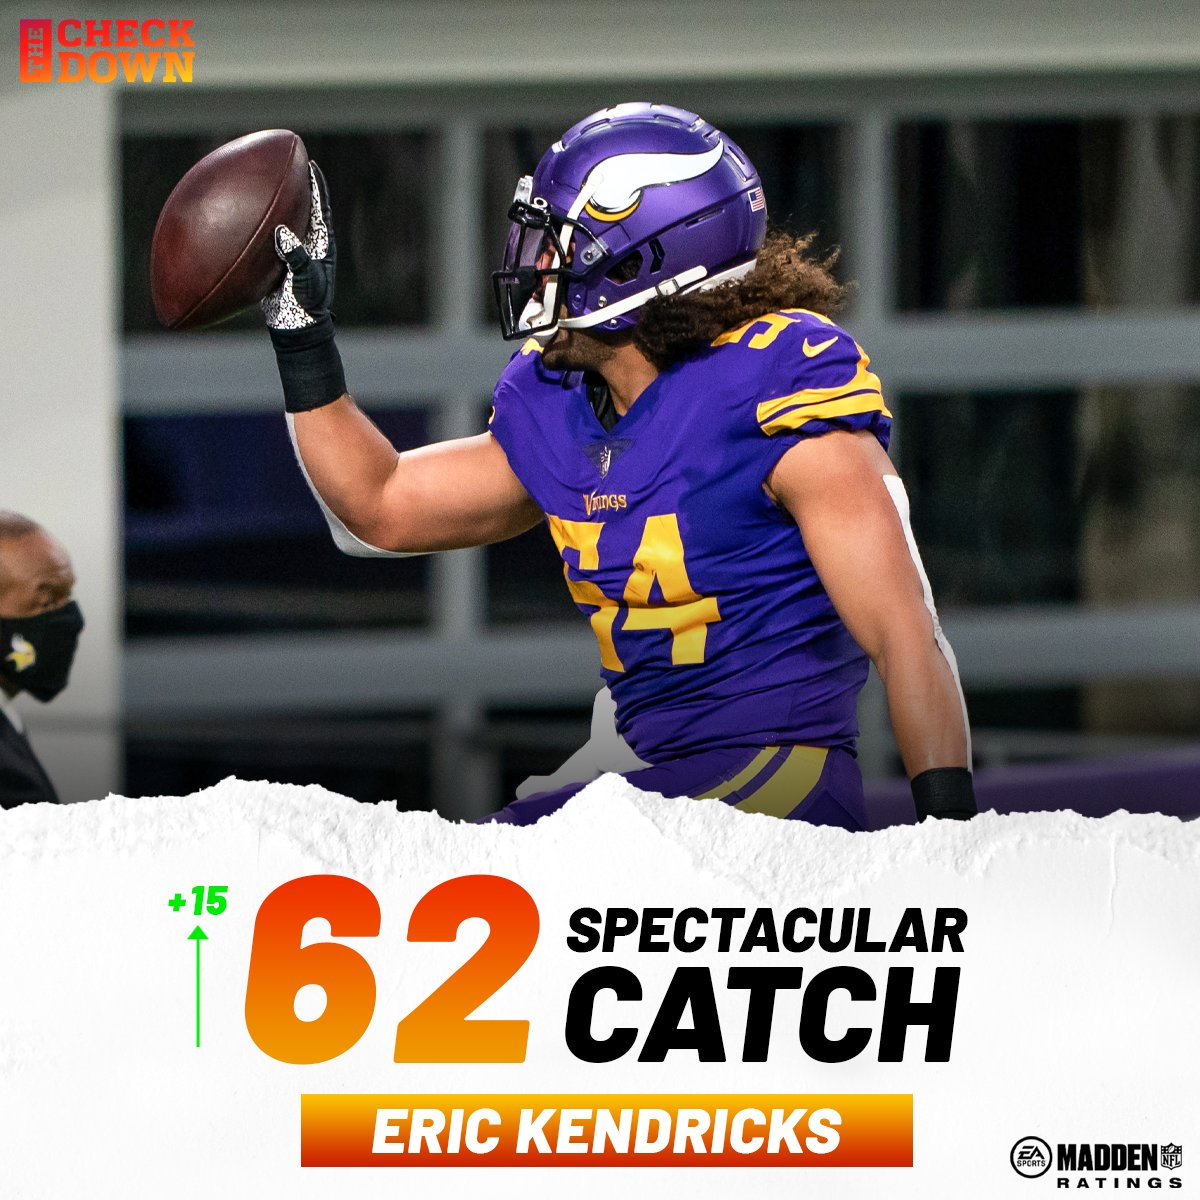 Eric Kendricks' spec catch is going WAY up after his crazy INT 🔥 @EricKendricks54 @Vikings @EAMaddenNFL